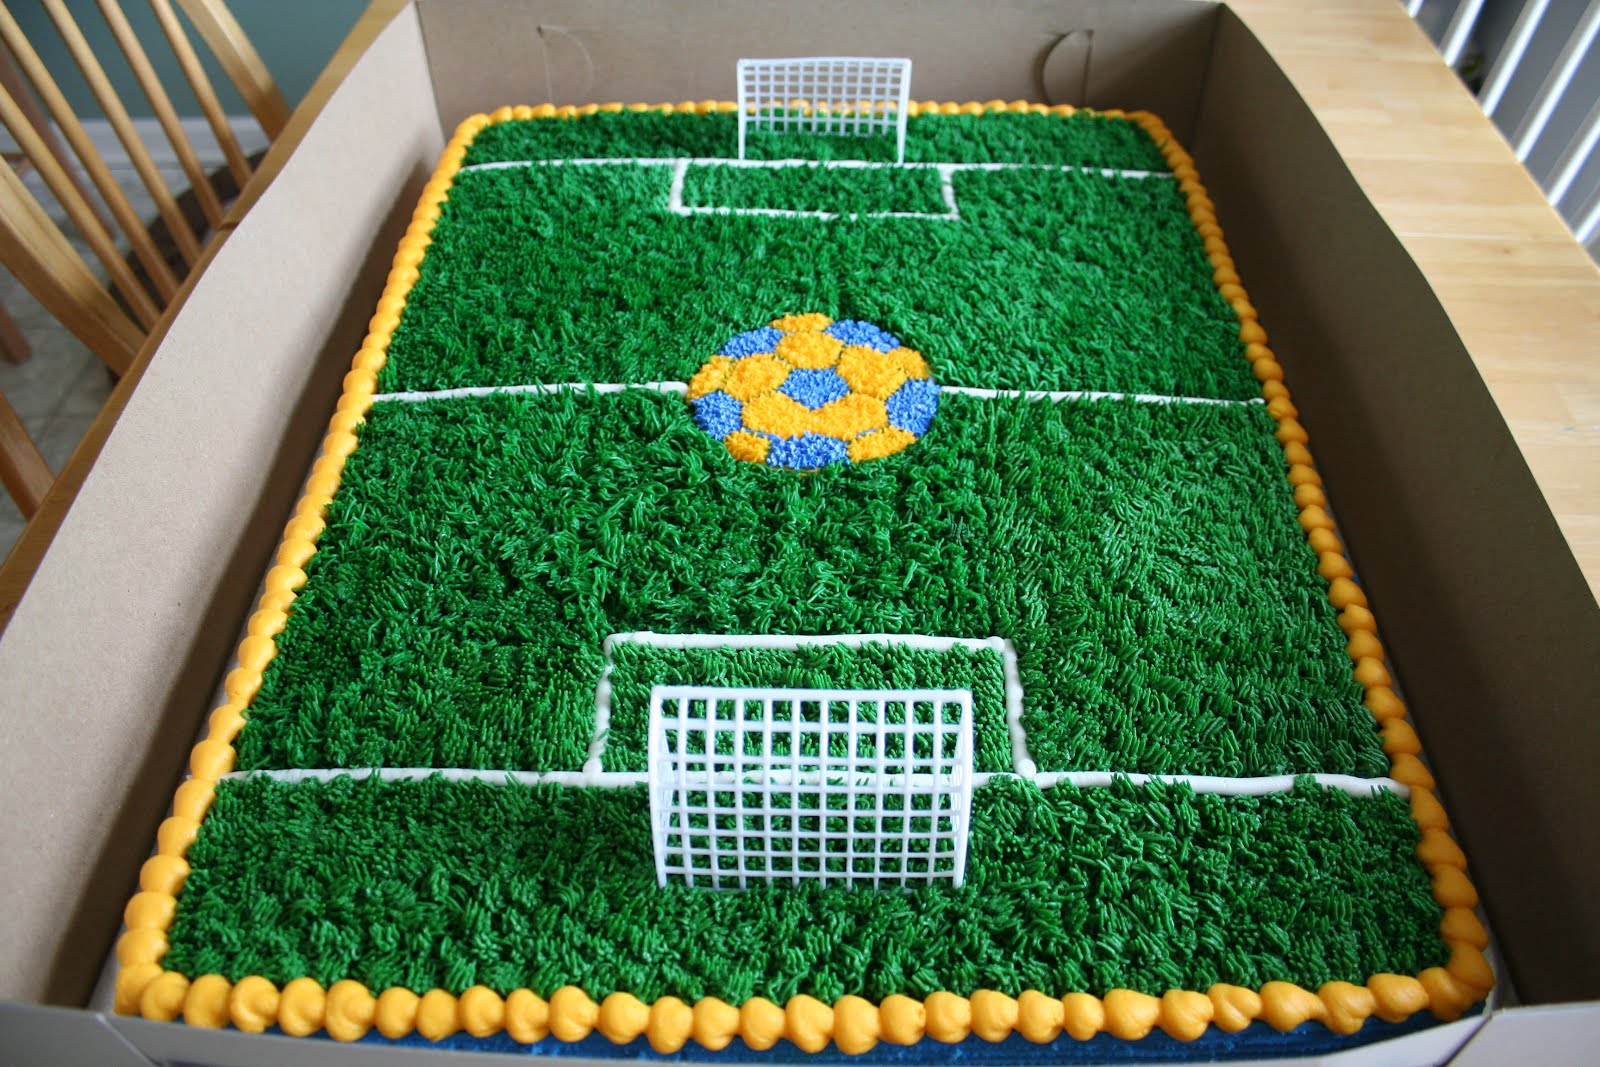 Cake Decorating Football Field : Cakes by Liz: Giant Soccer Field Cake